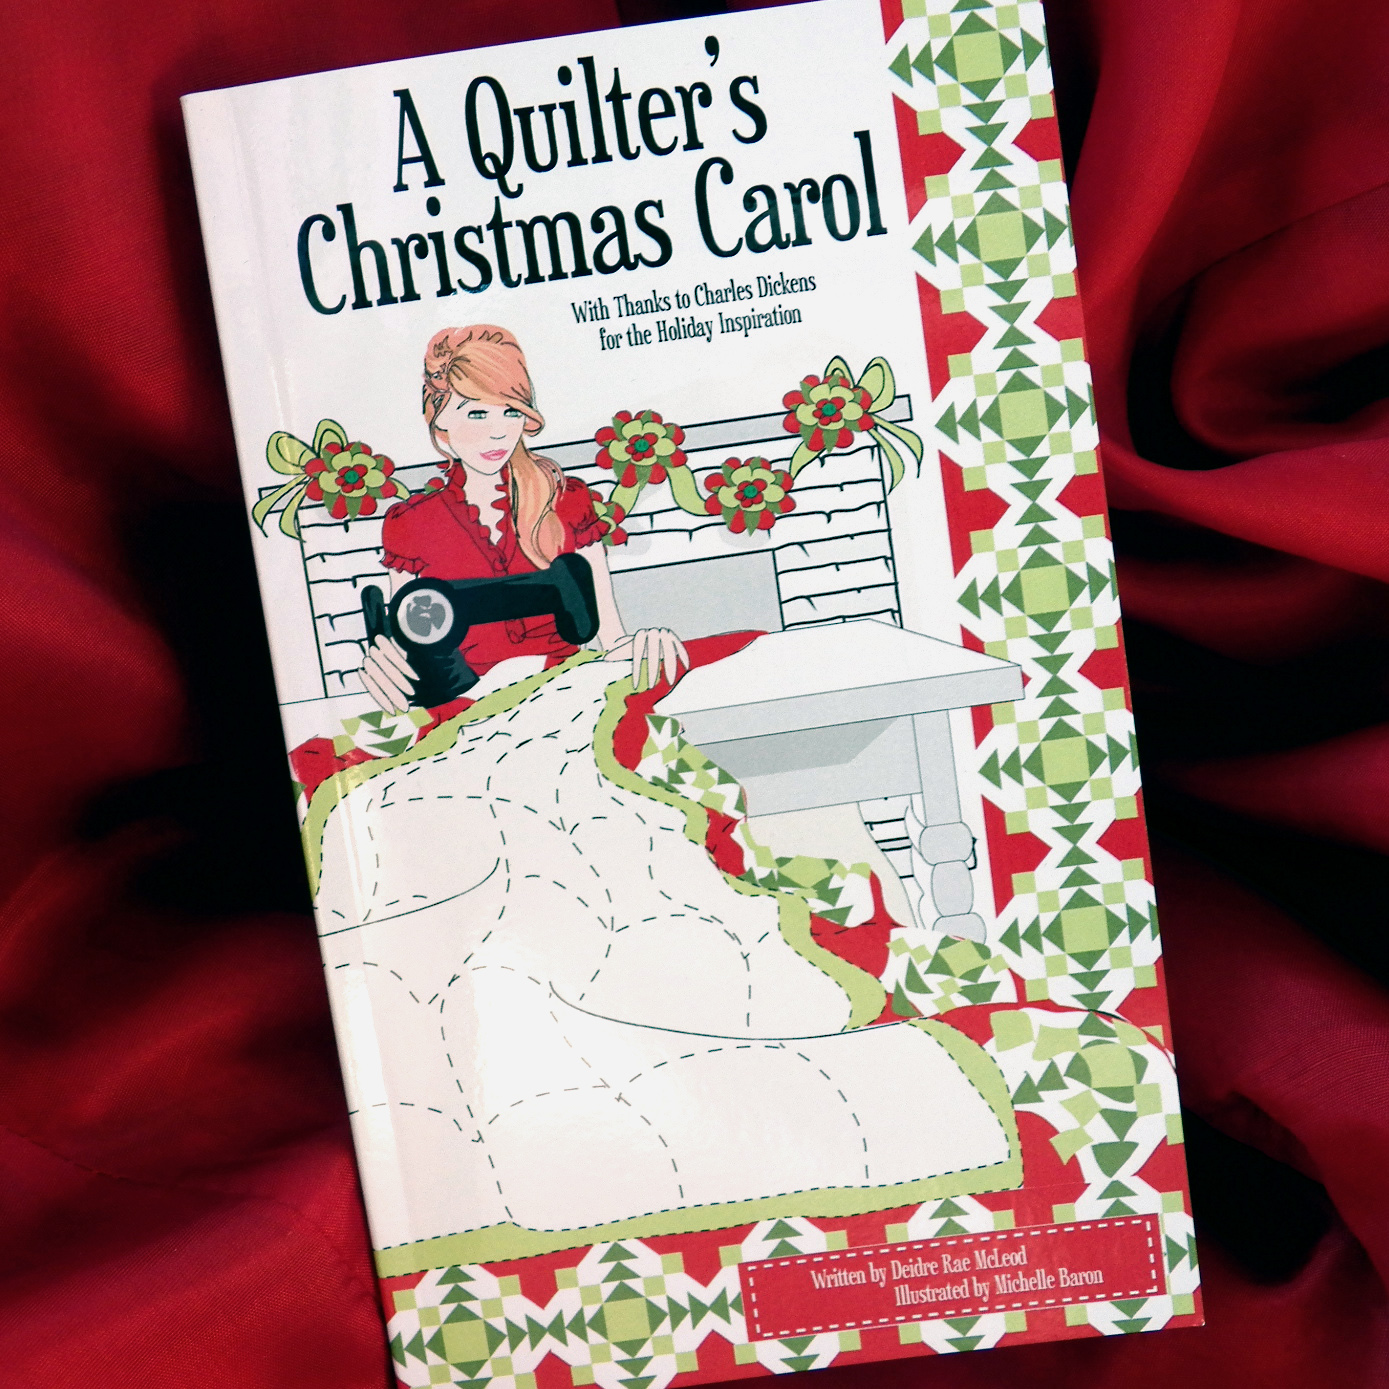 A Quilter's Christmas Carol gift book